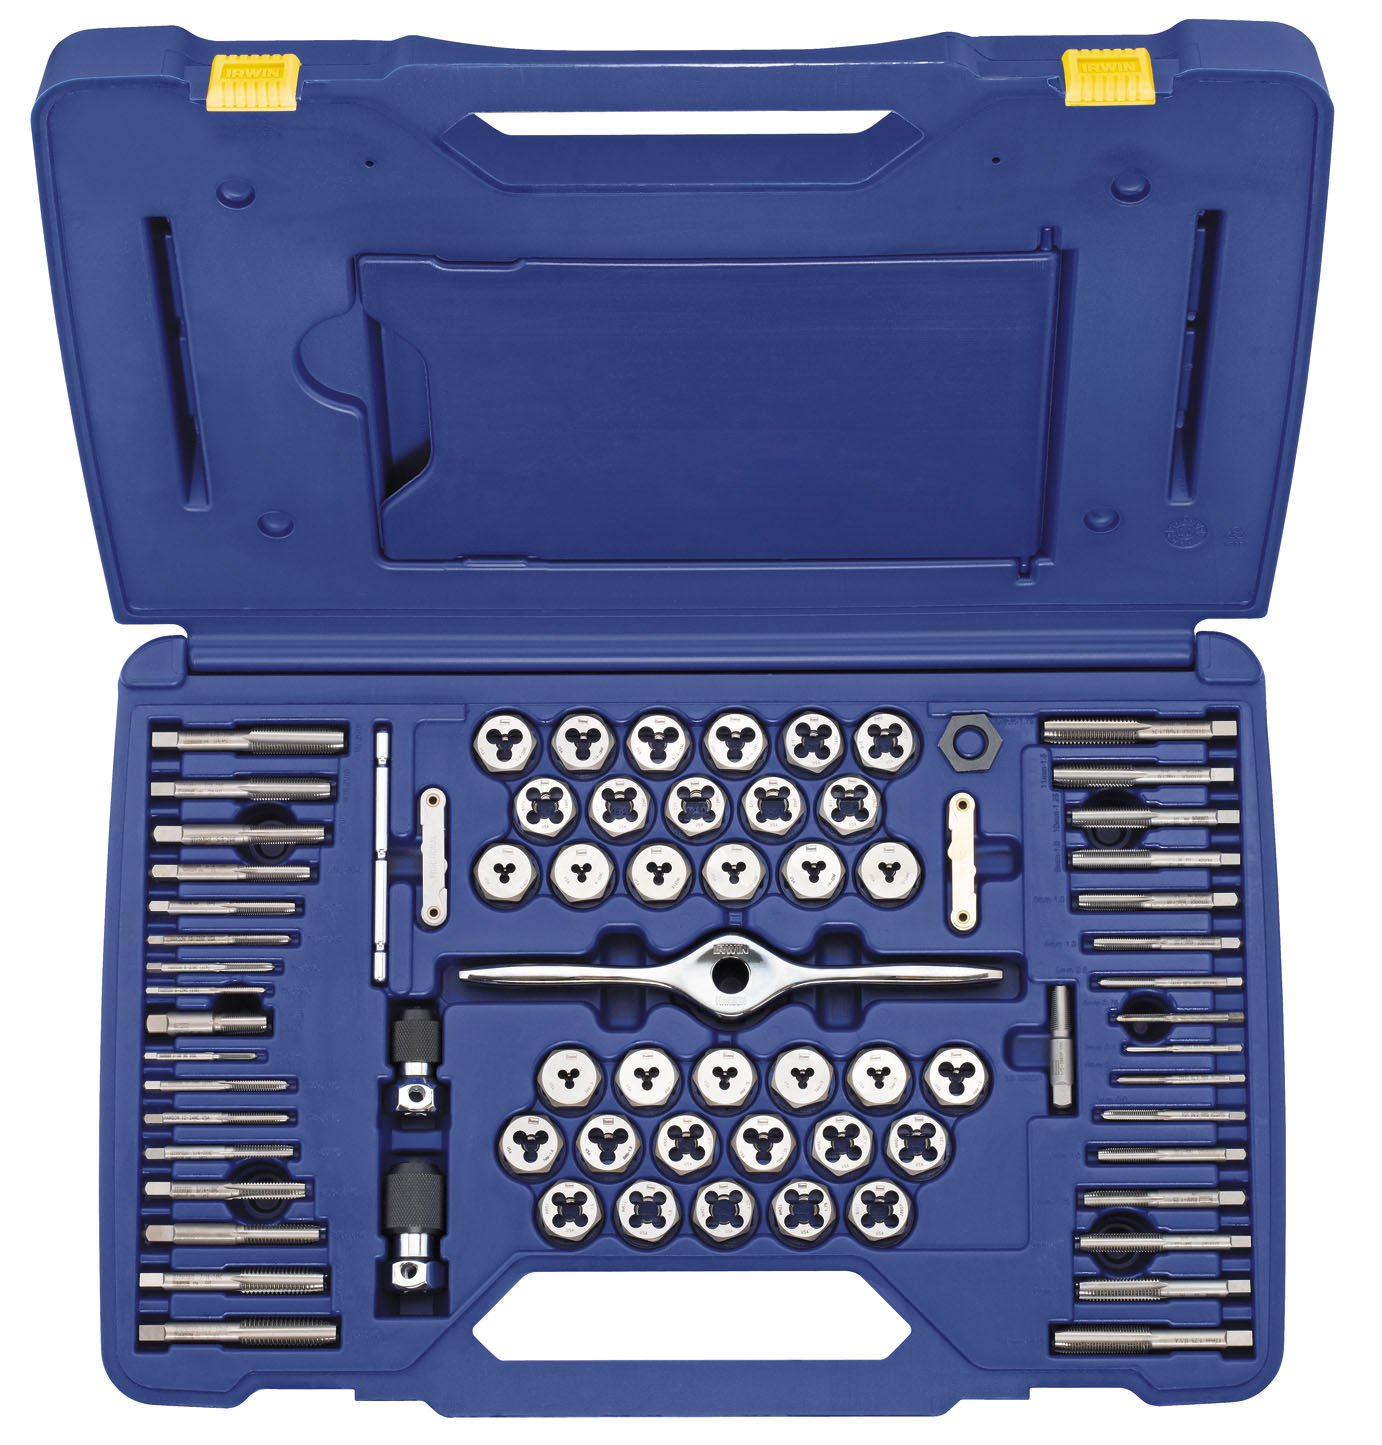 Irwin Tools 1841350 Performance Threading System Self-Aligning Tap and Die Set, 75-Piece by Irwin Tools